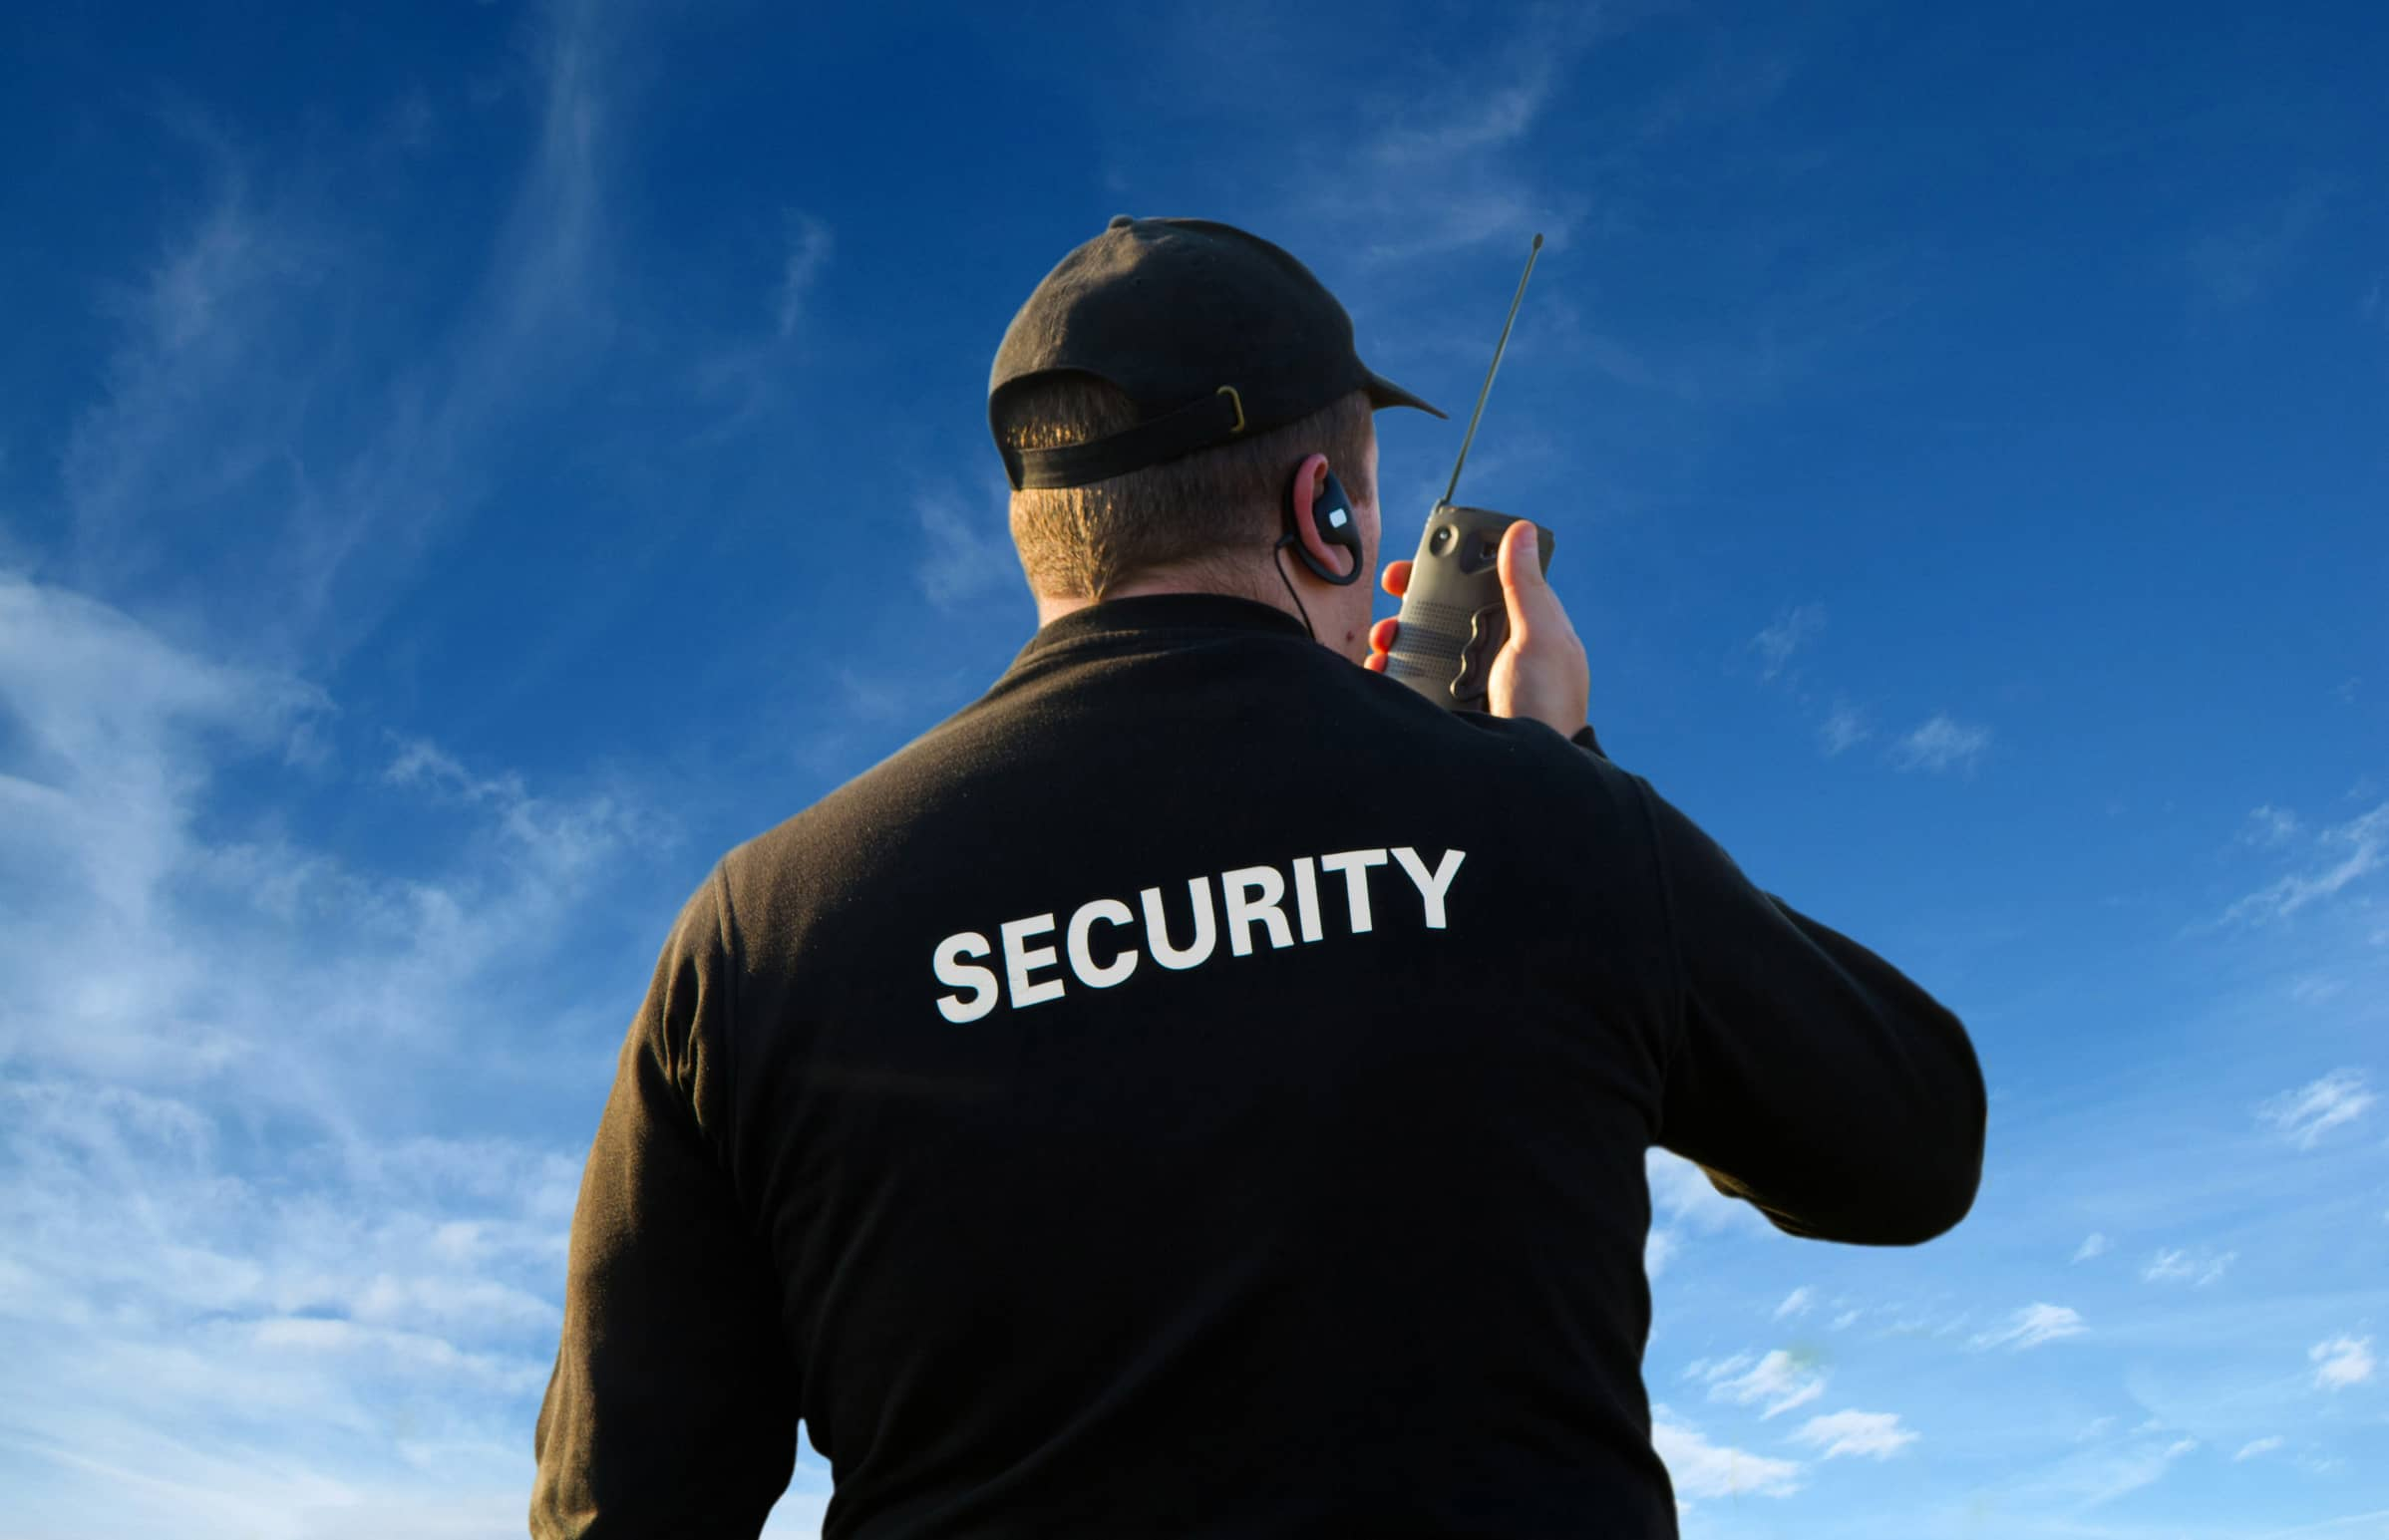 patrolforce - security services company